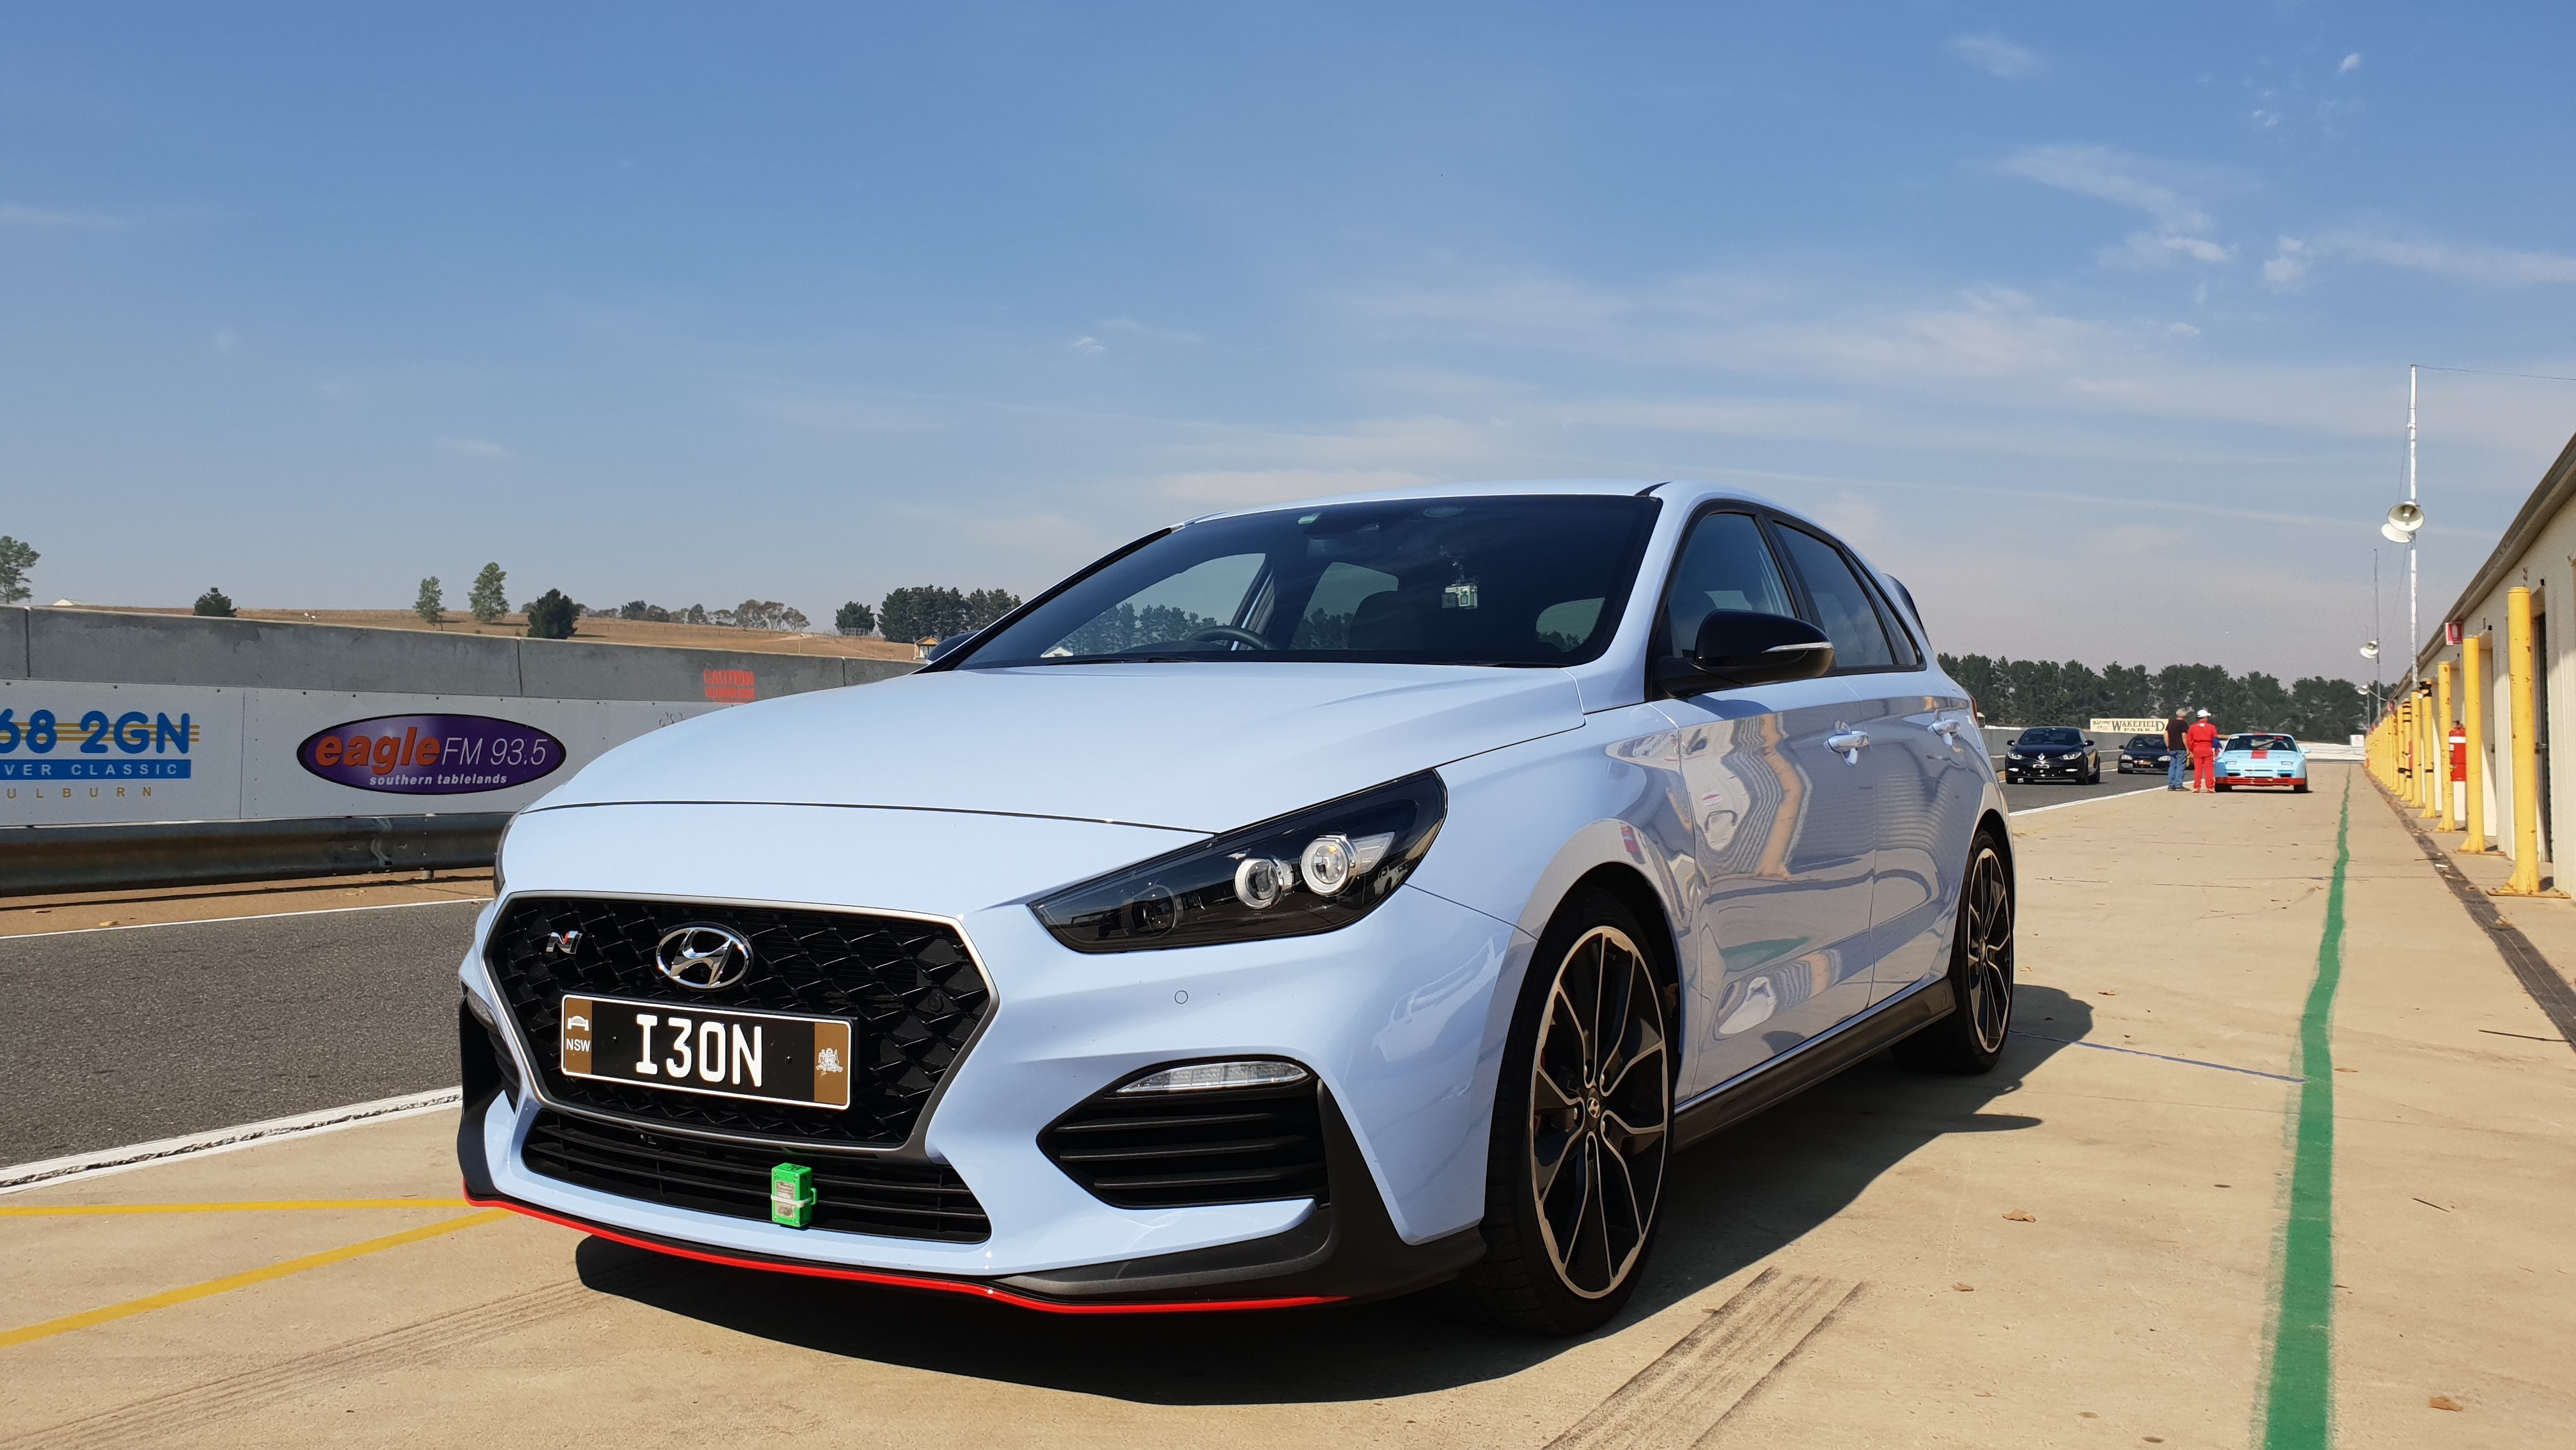 2018 Hyundai i30 N with Luxury Pack new car review